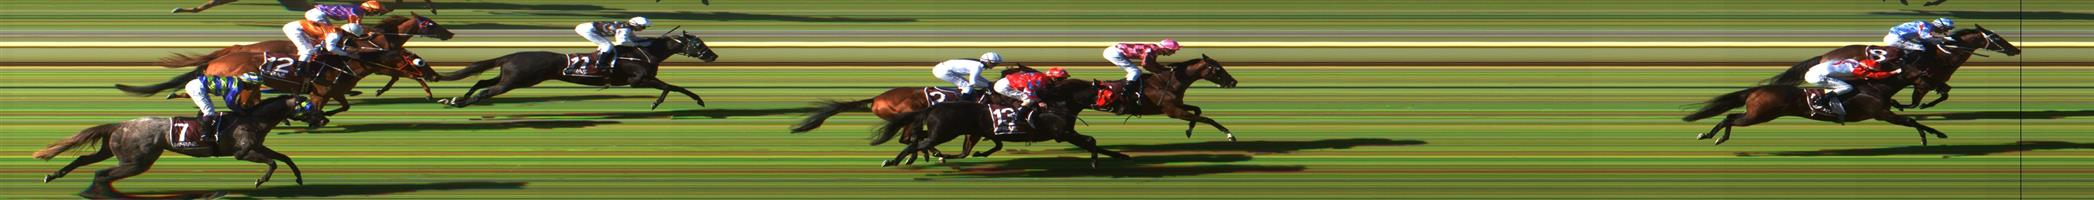 WODONGA Race 1 No. 7 Tormino @ $6 (1 UNIT WIN)   Result : Non Qualifier - Unplaced at SP $9.50